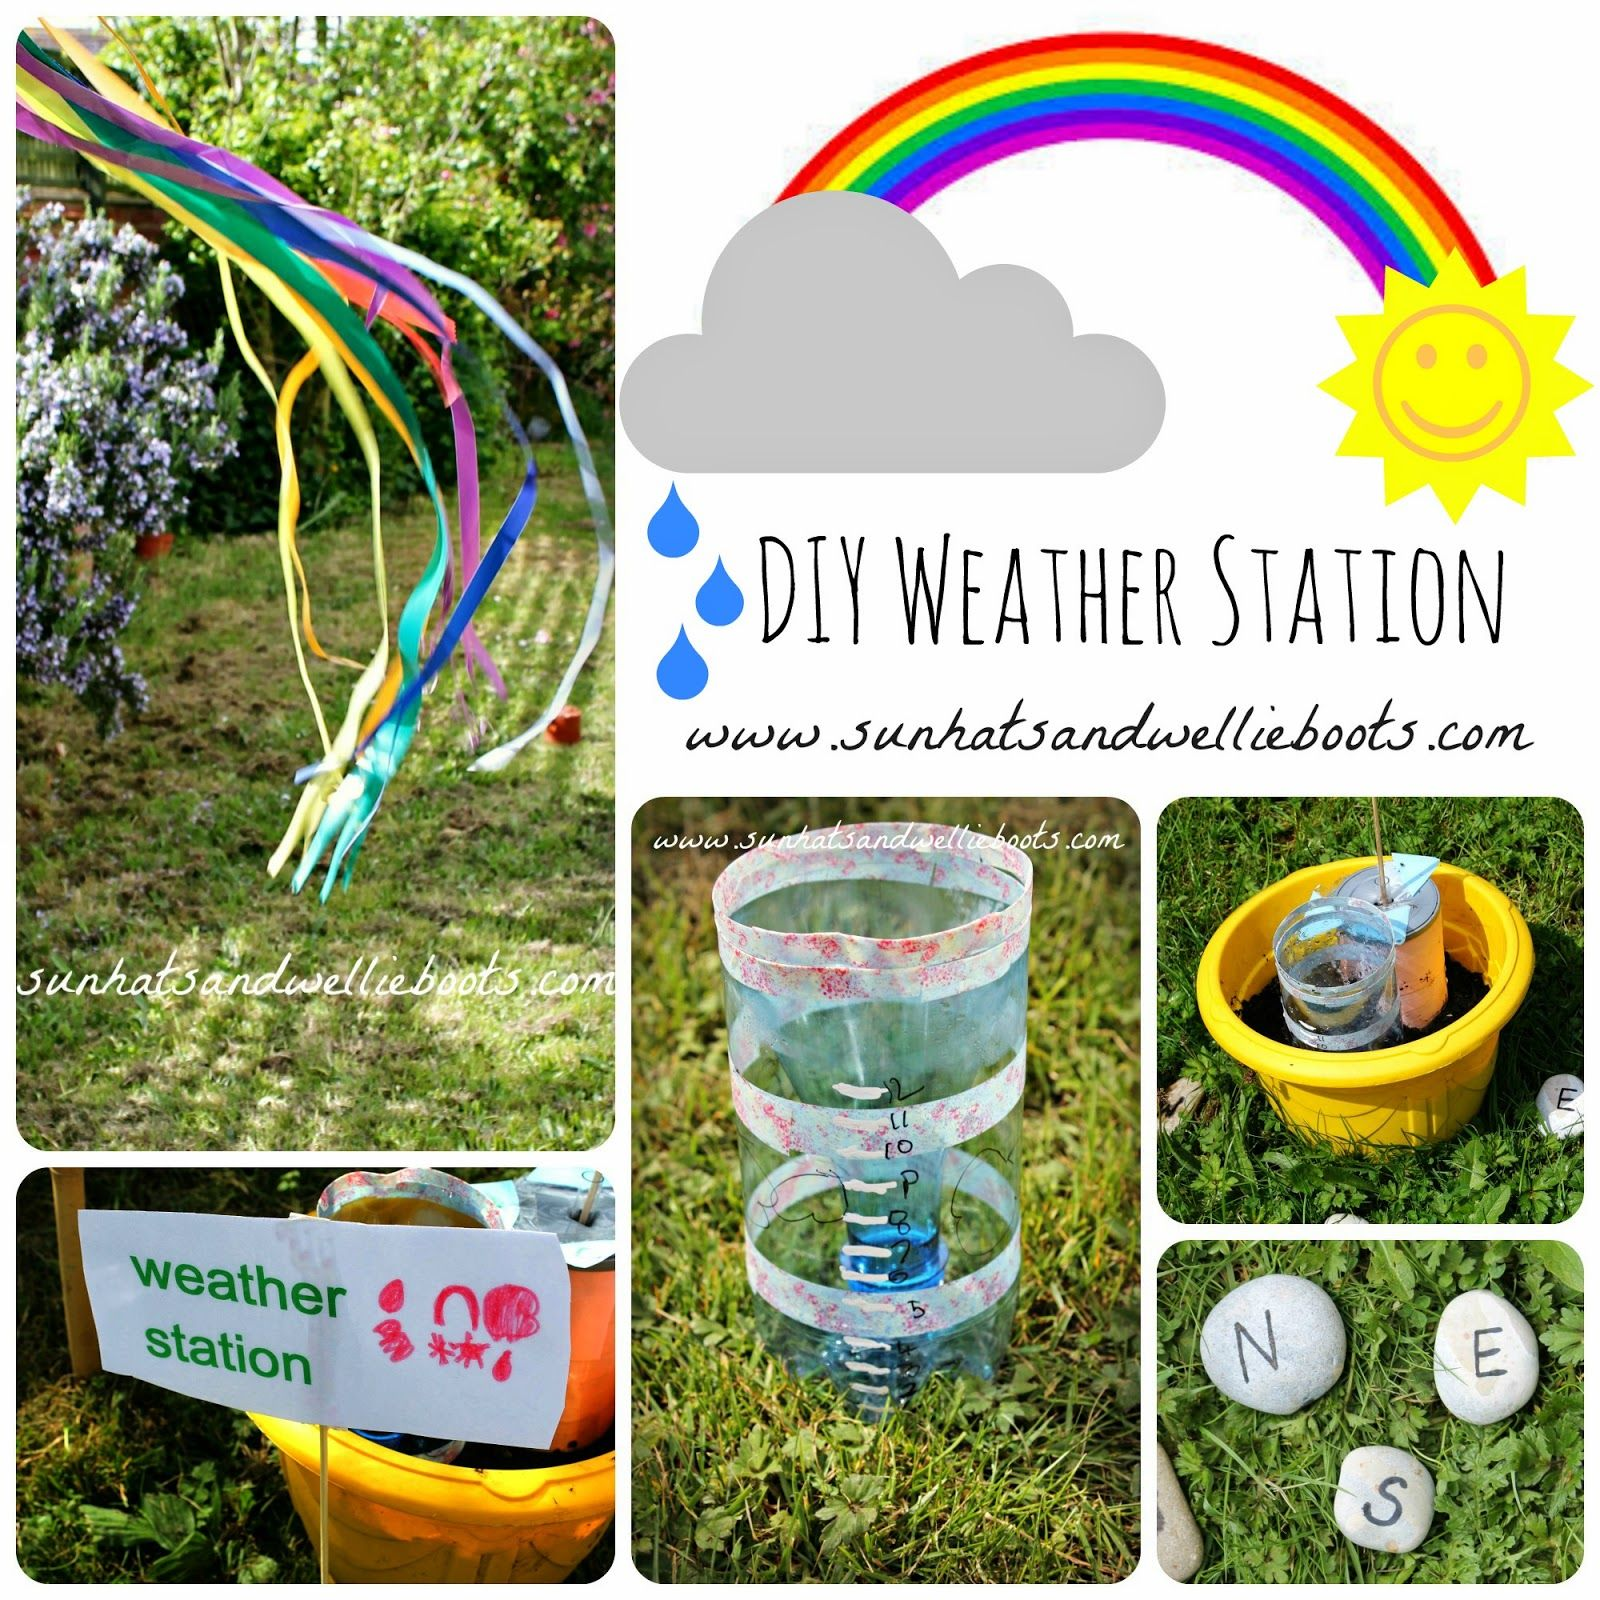 Diy Weather Station For Kids To Make From Sun Hats